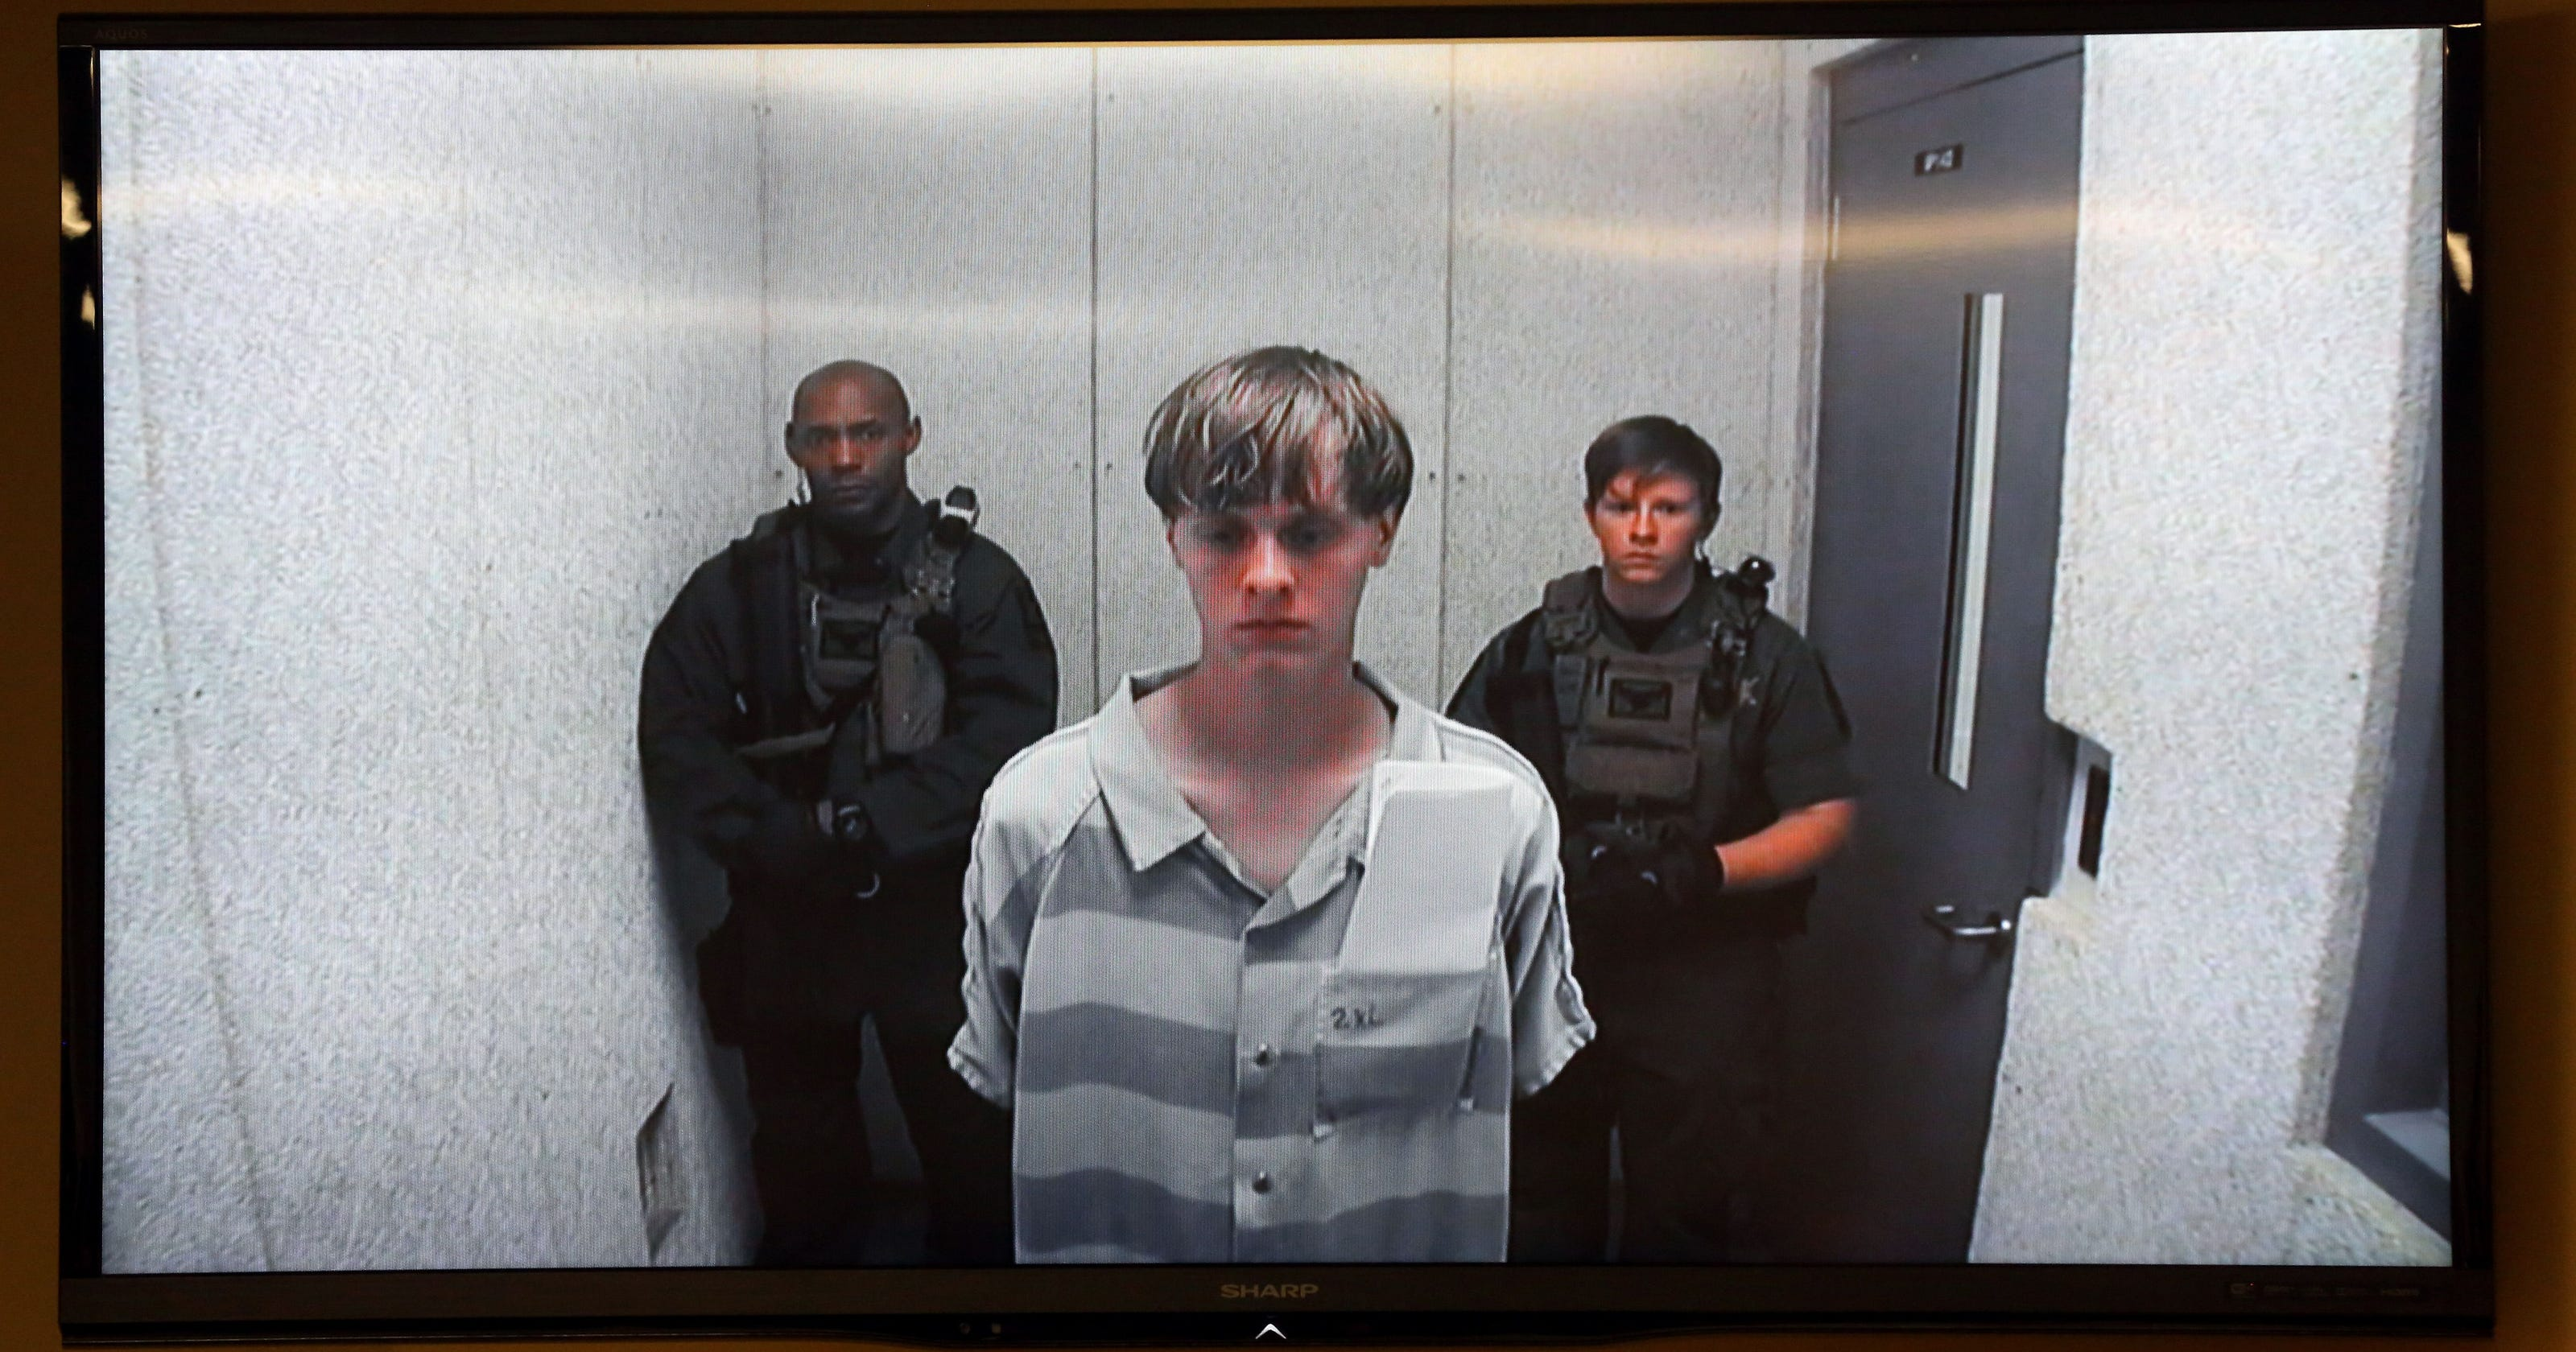 Lynch Justice Dept To Seek Death Penalty Against Dylann Roof